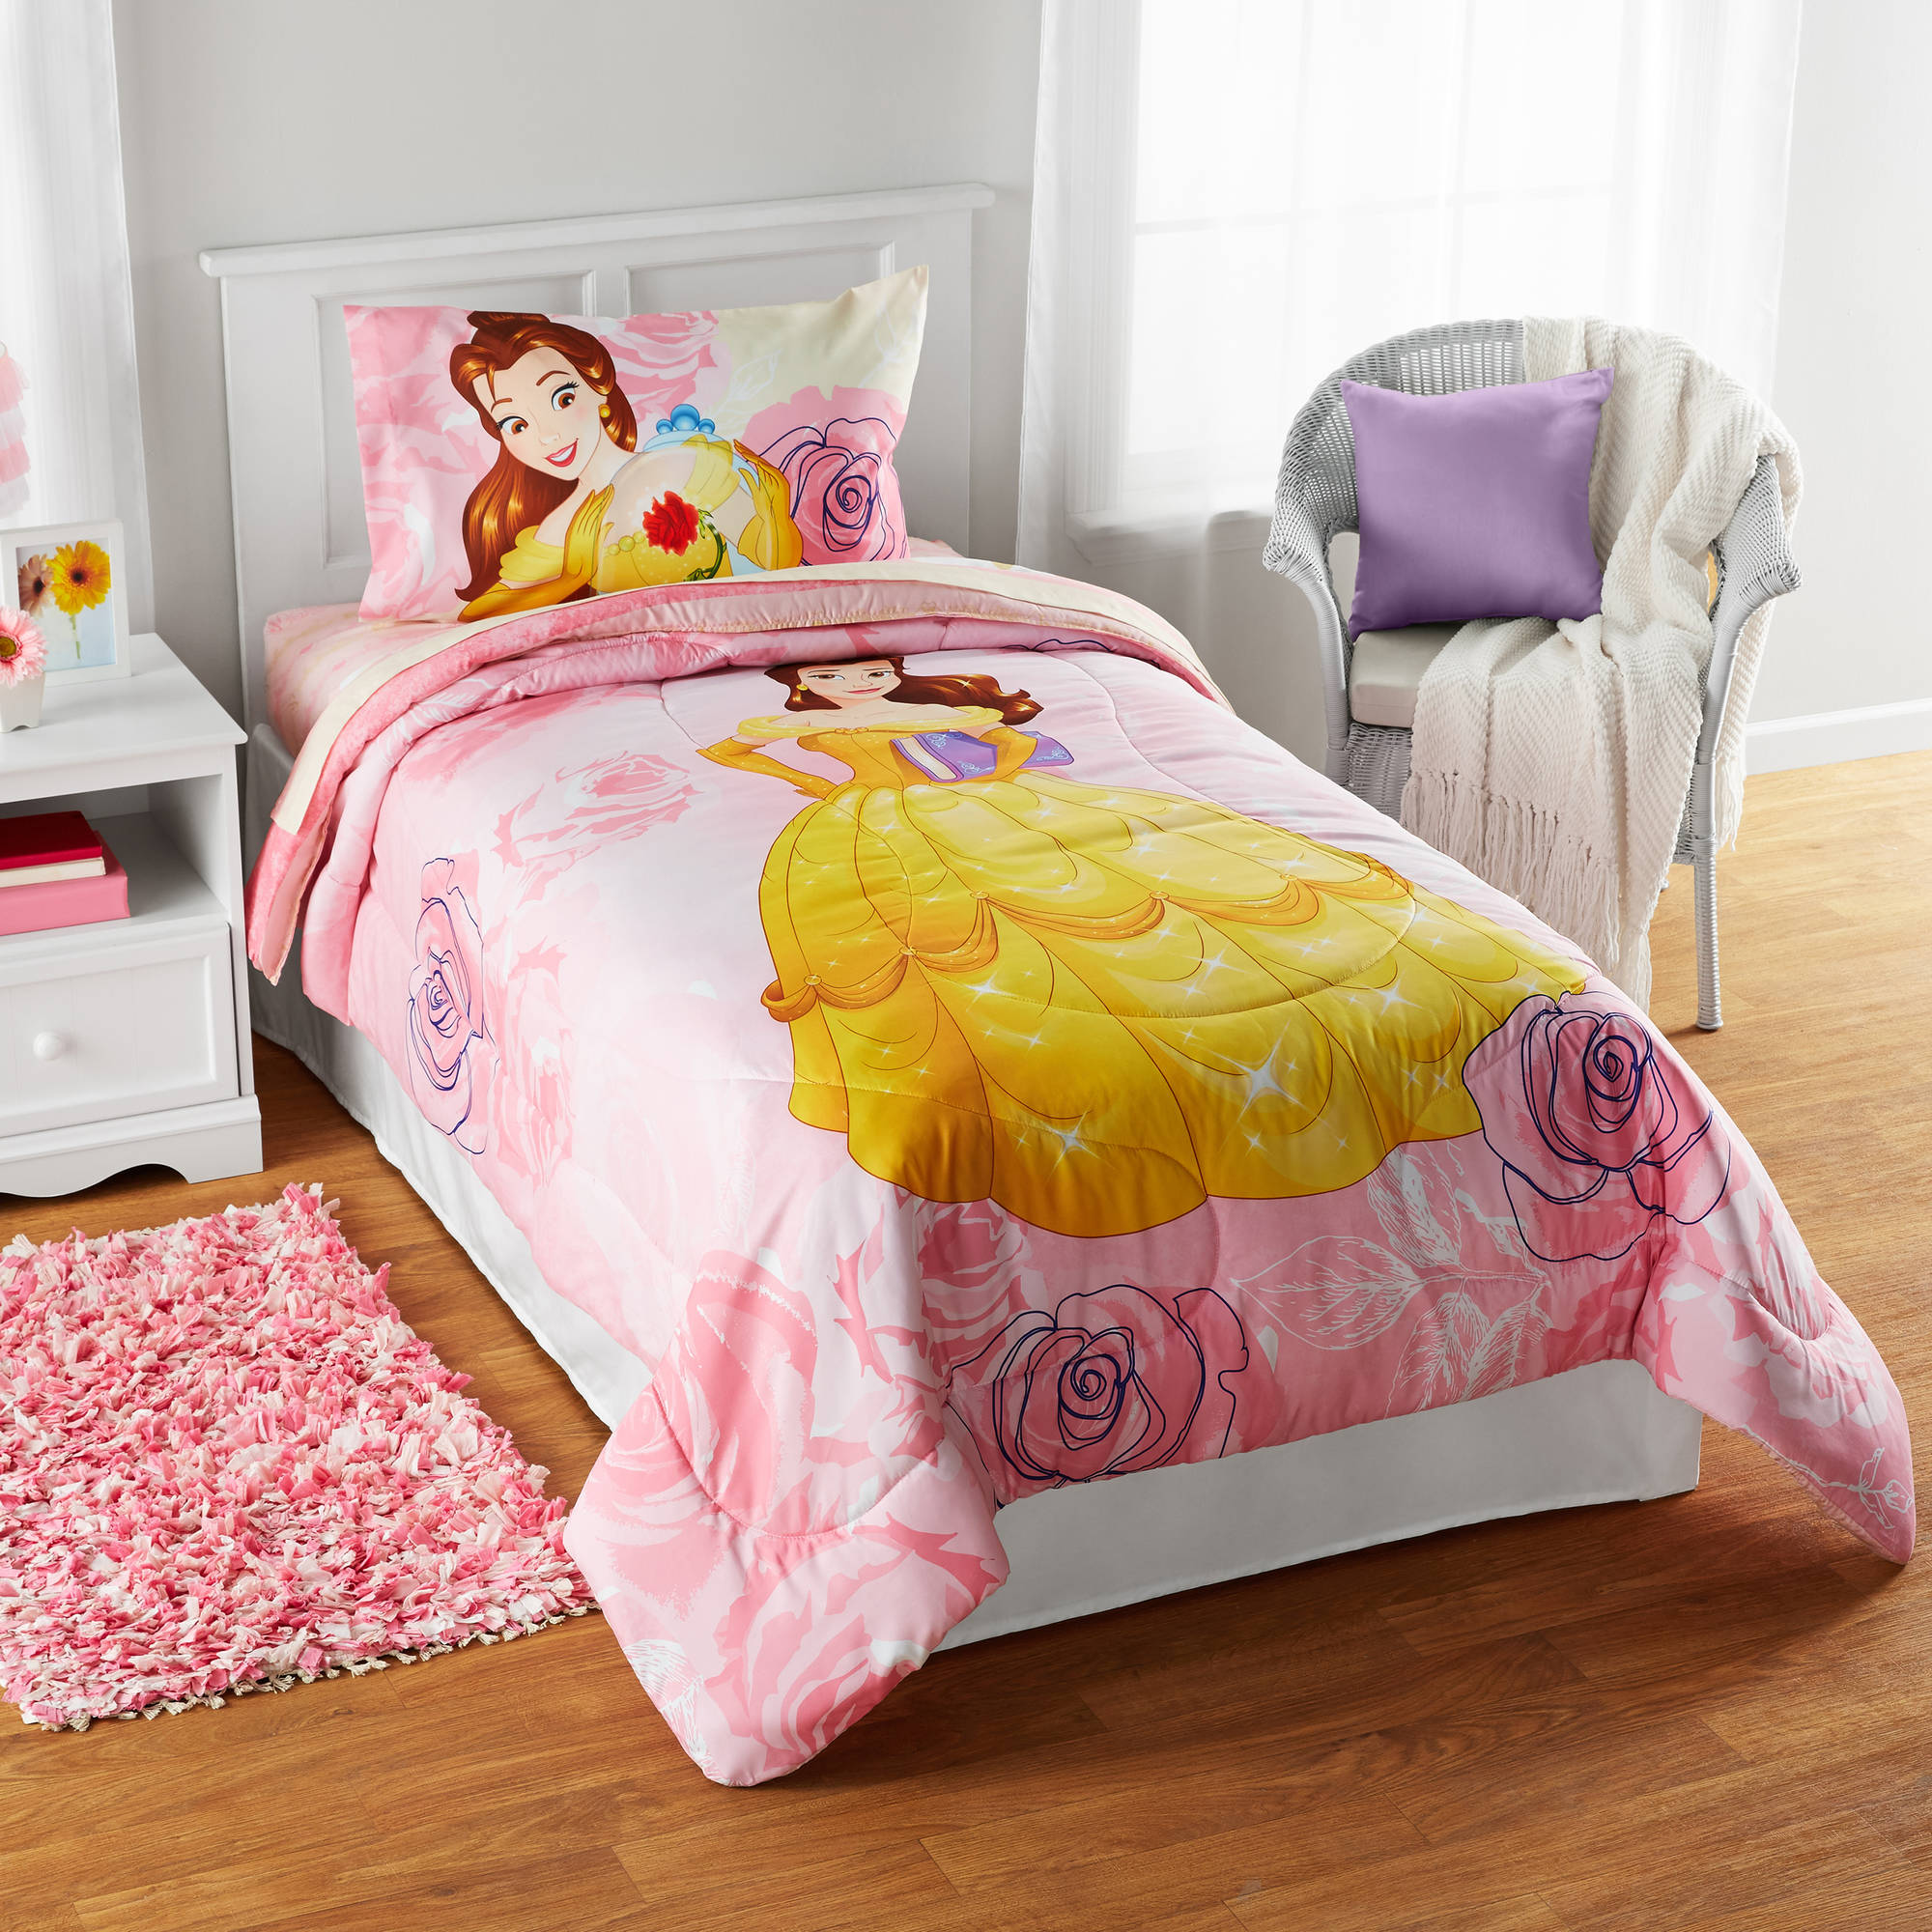 Design Princess Bedding disney princess bedazzling bedding sheet set walmart com